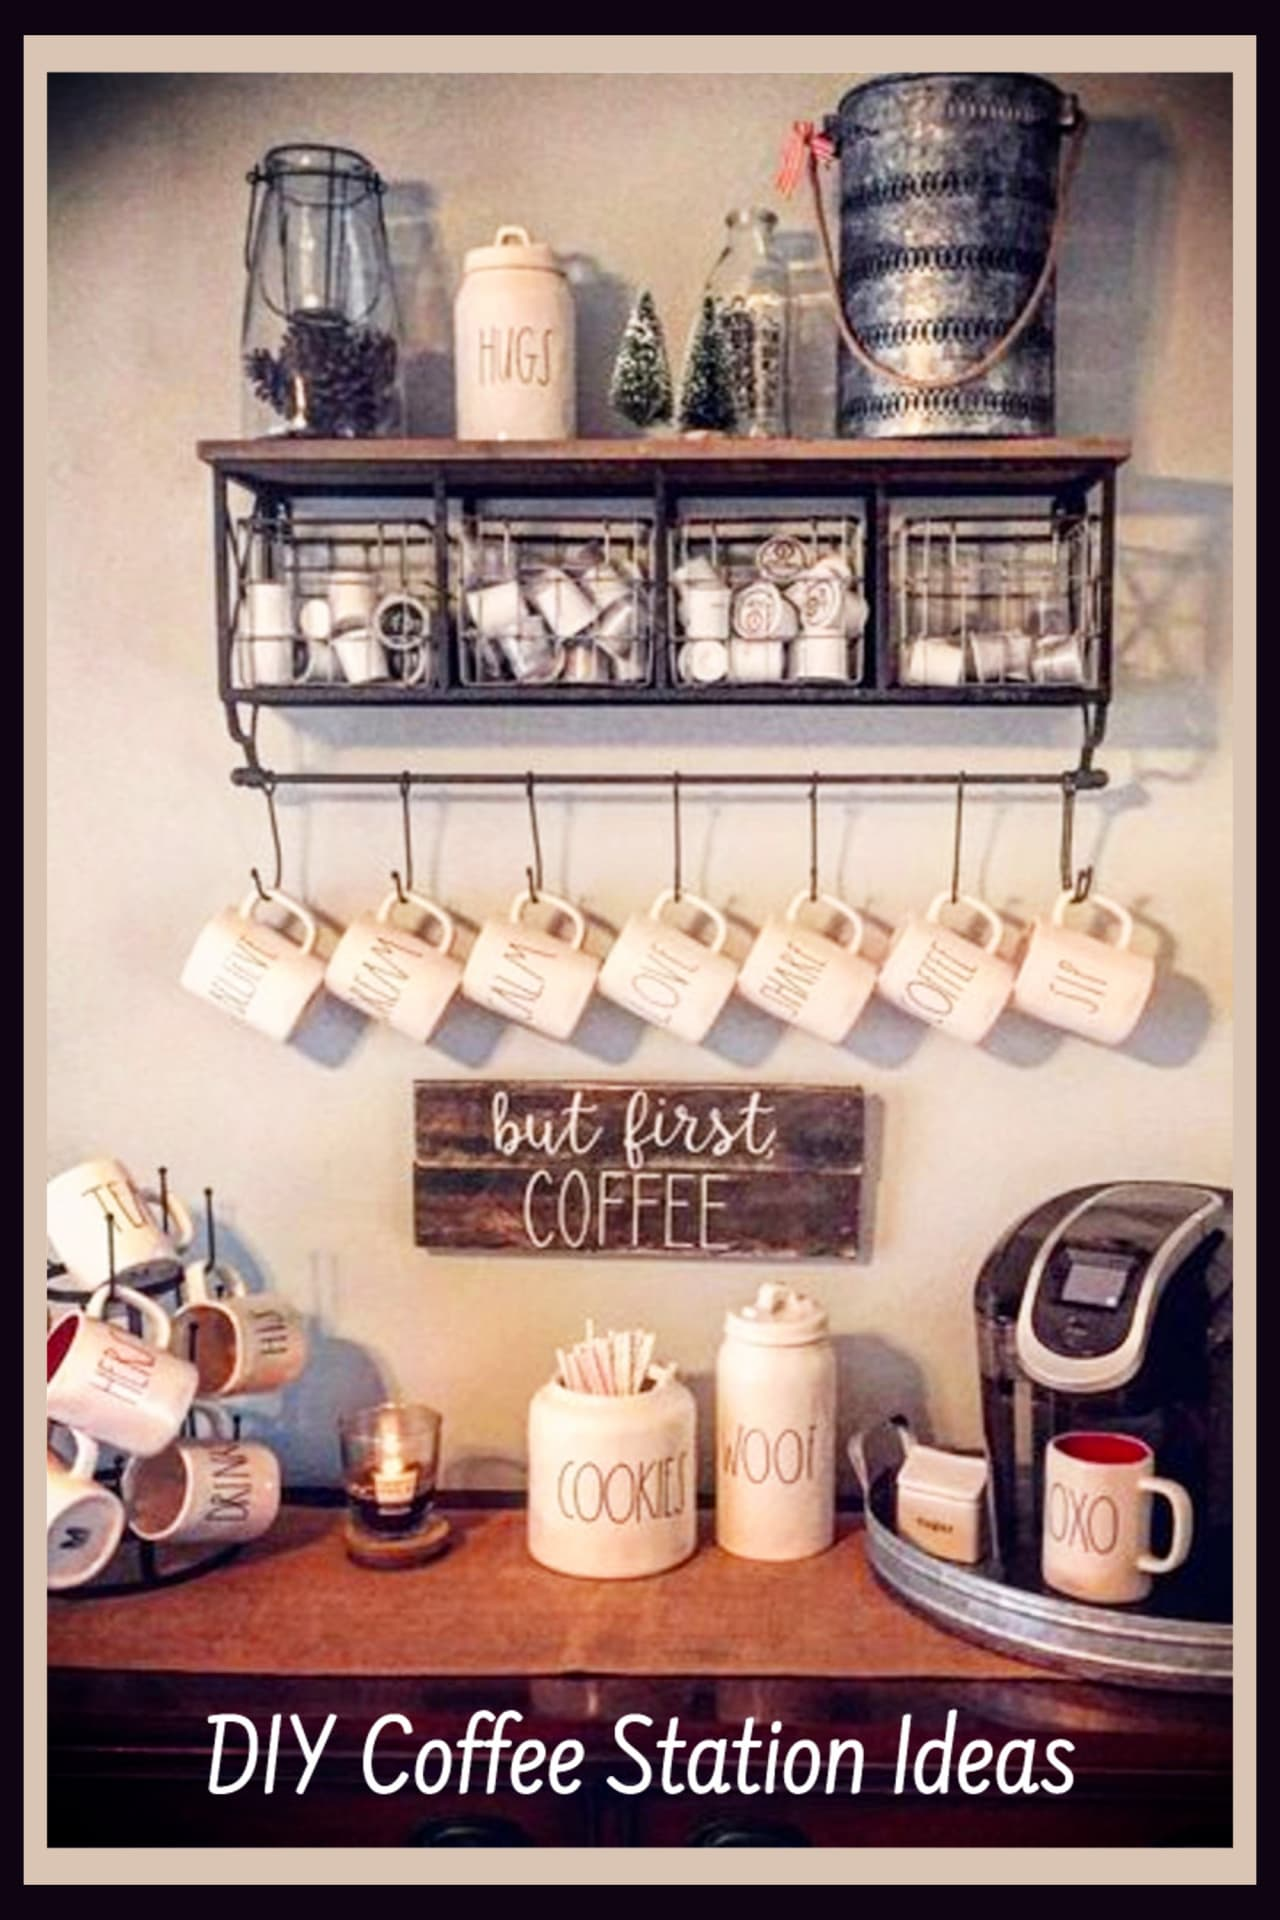 Coffee Bar Ideas - simple kitchen coffee bar ideas including small countertop coffee bar ideas and corner coffee bar ideas.  Gorgeous farmhouse coffee bars and rustic coffee bar coffee station ideas too.  Easy DIY coffee bar ideas for all size kitchens - even kitchens in apartments